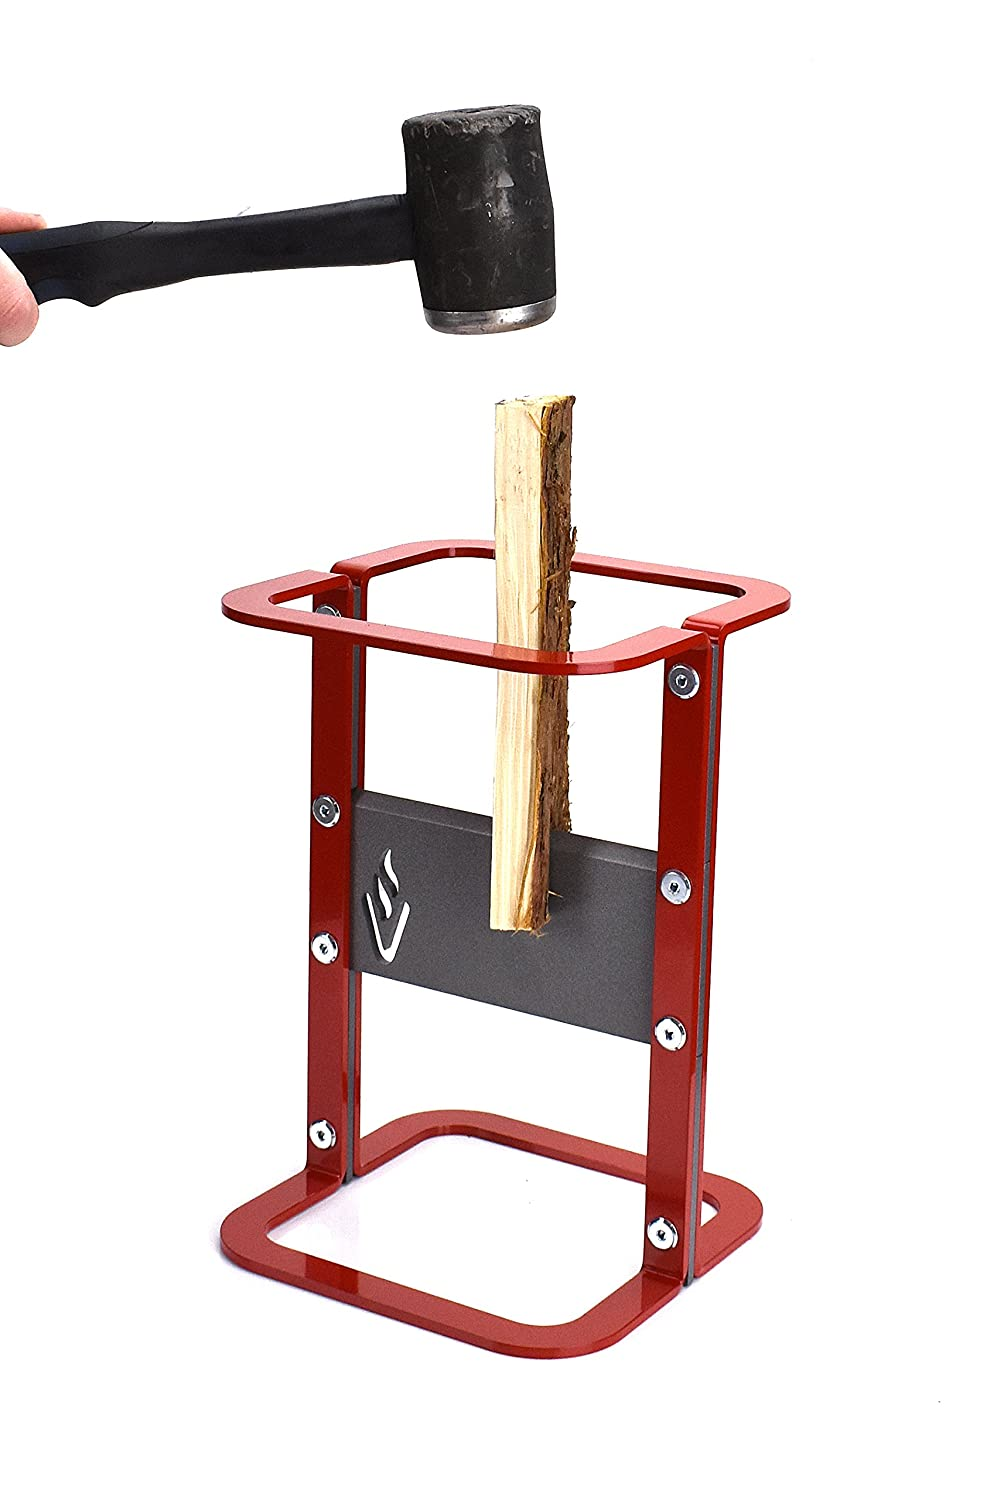 Volcann Kindling Splitter Firewood - Red